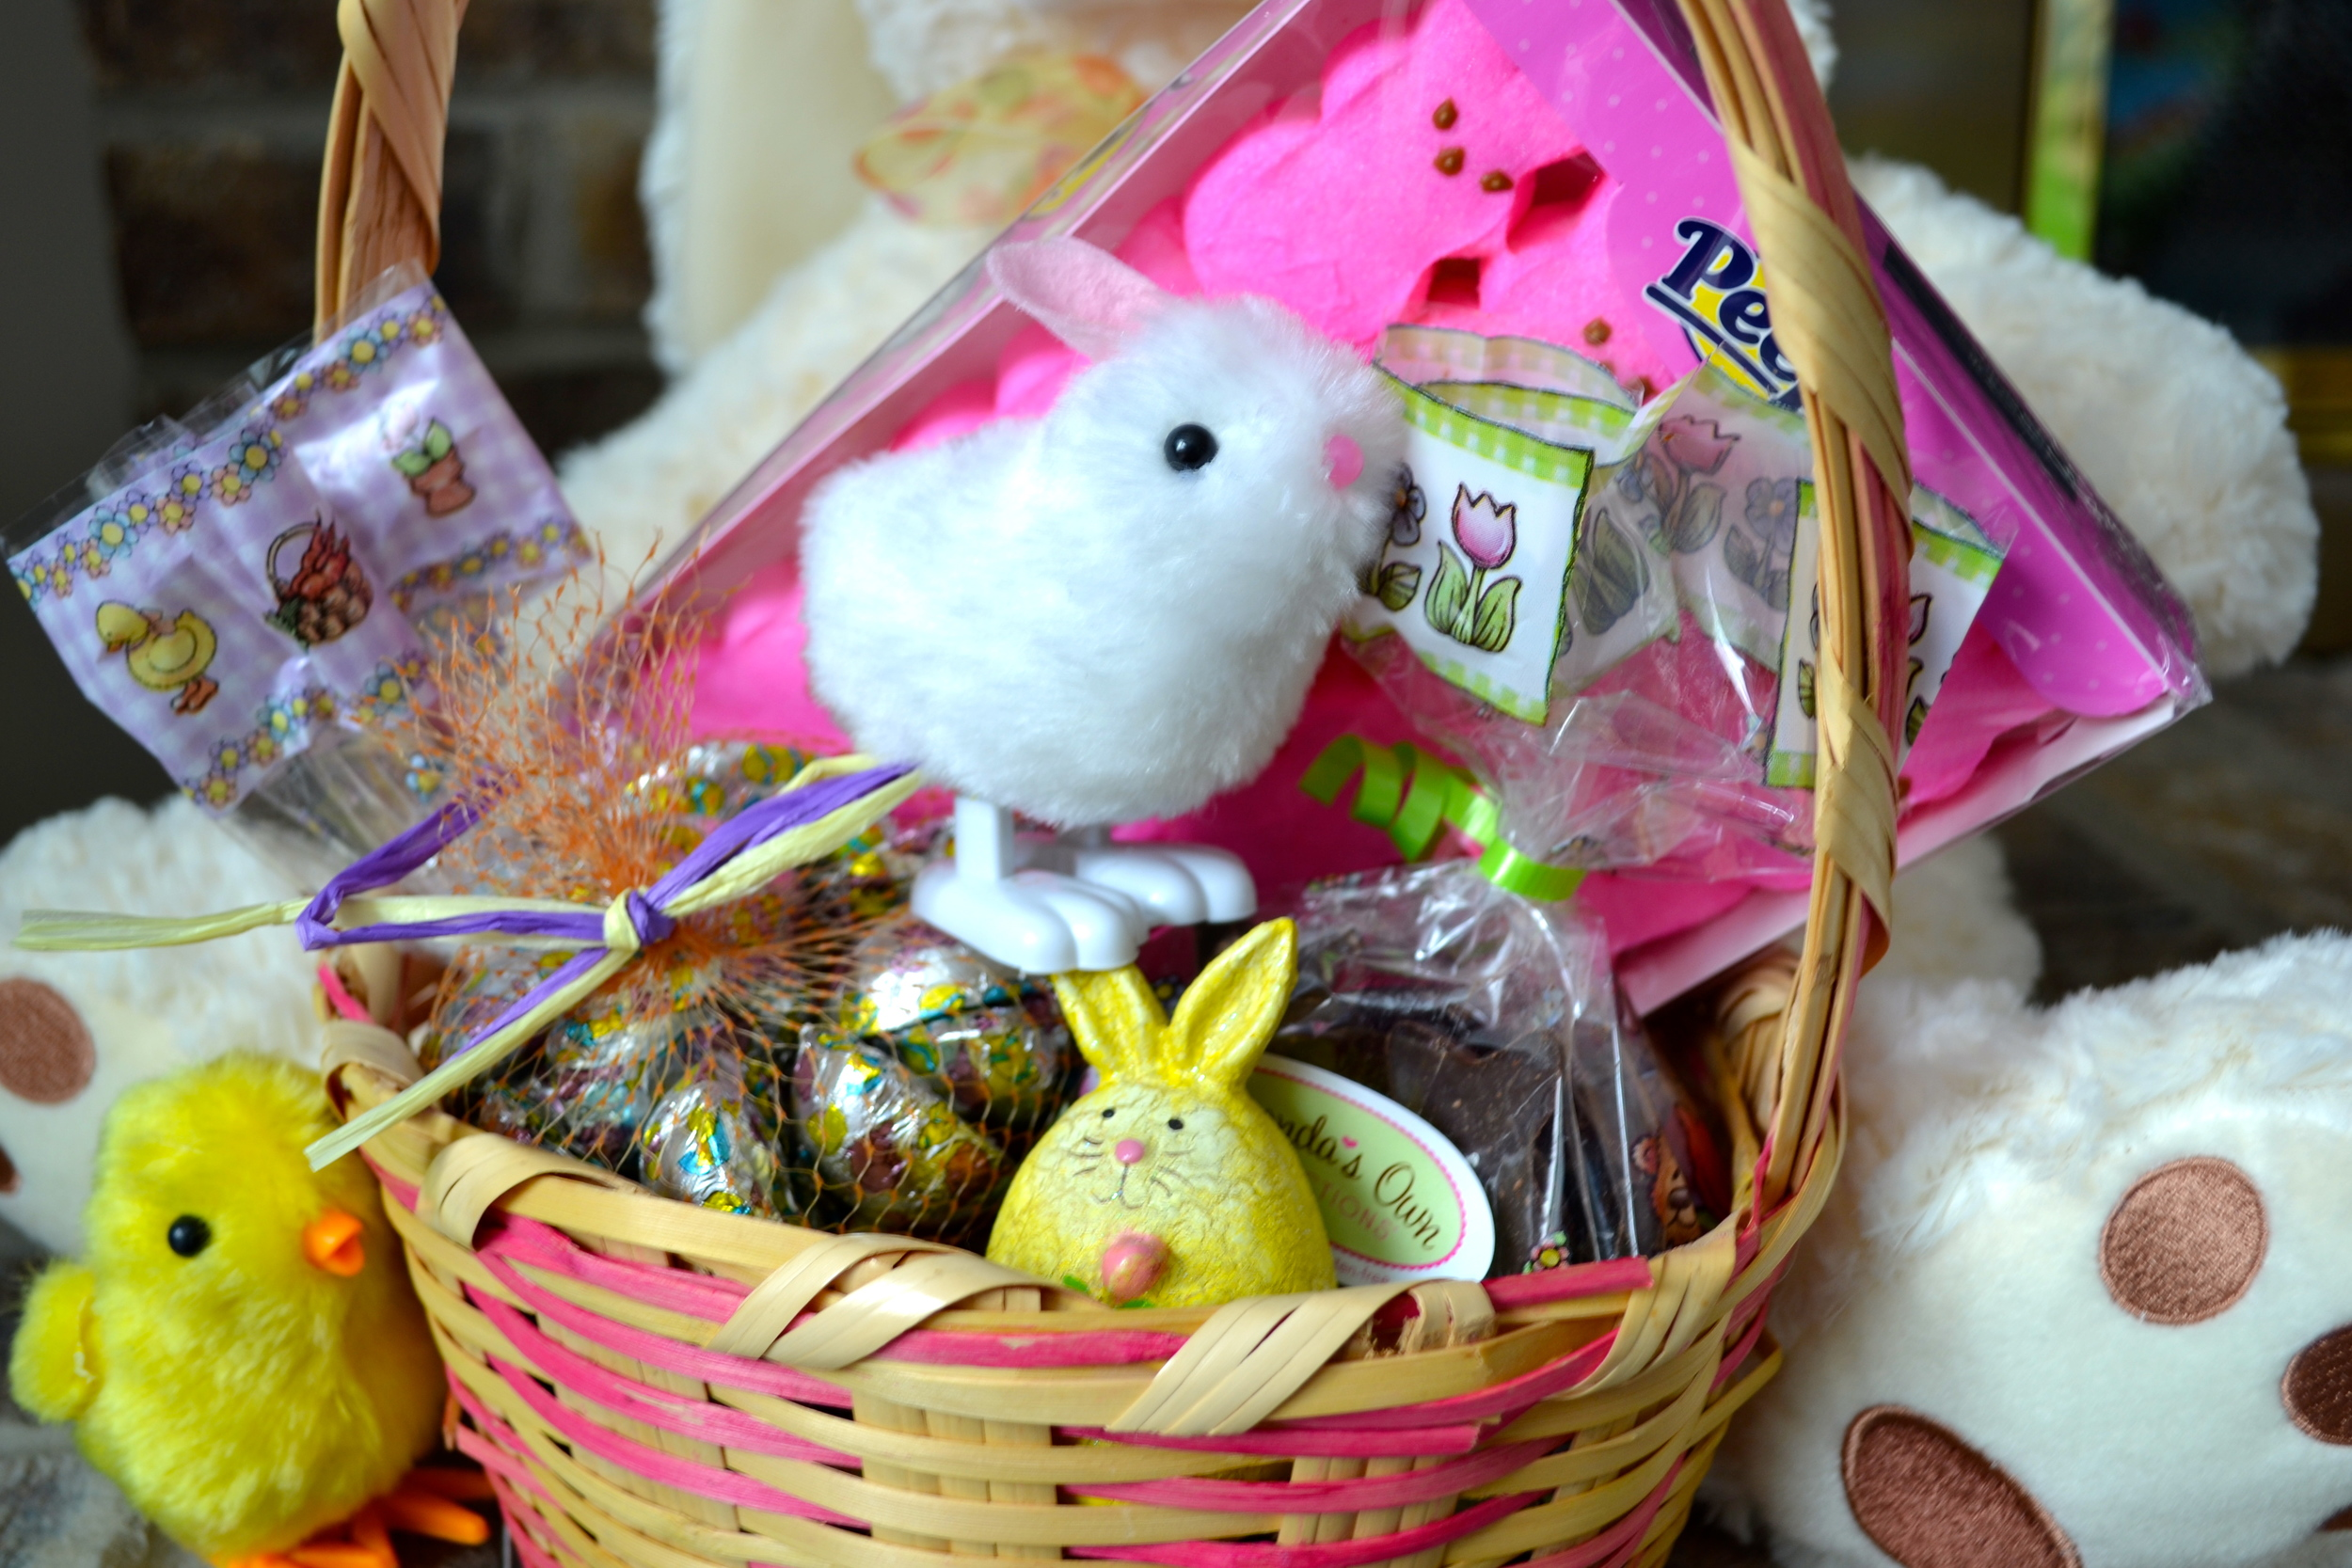 Kristen rutter of course with easter right around the corner i have seen a lot of ideas on blogs and websites for healthier or entirely food free easter gifts for food negle Image collections